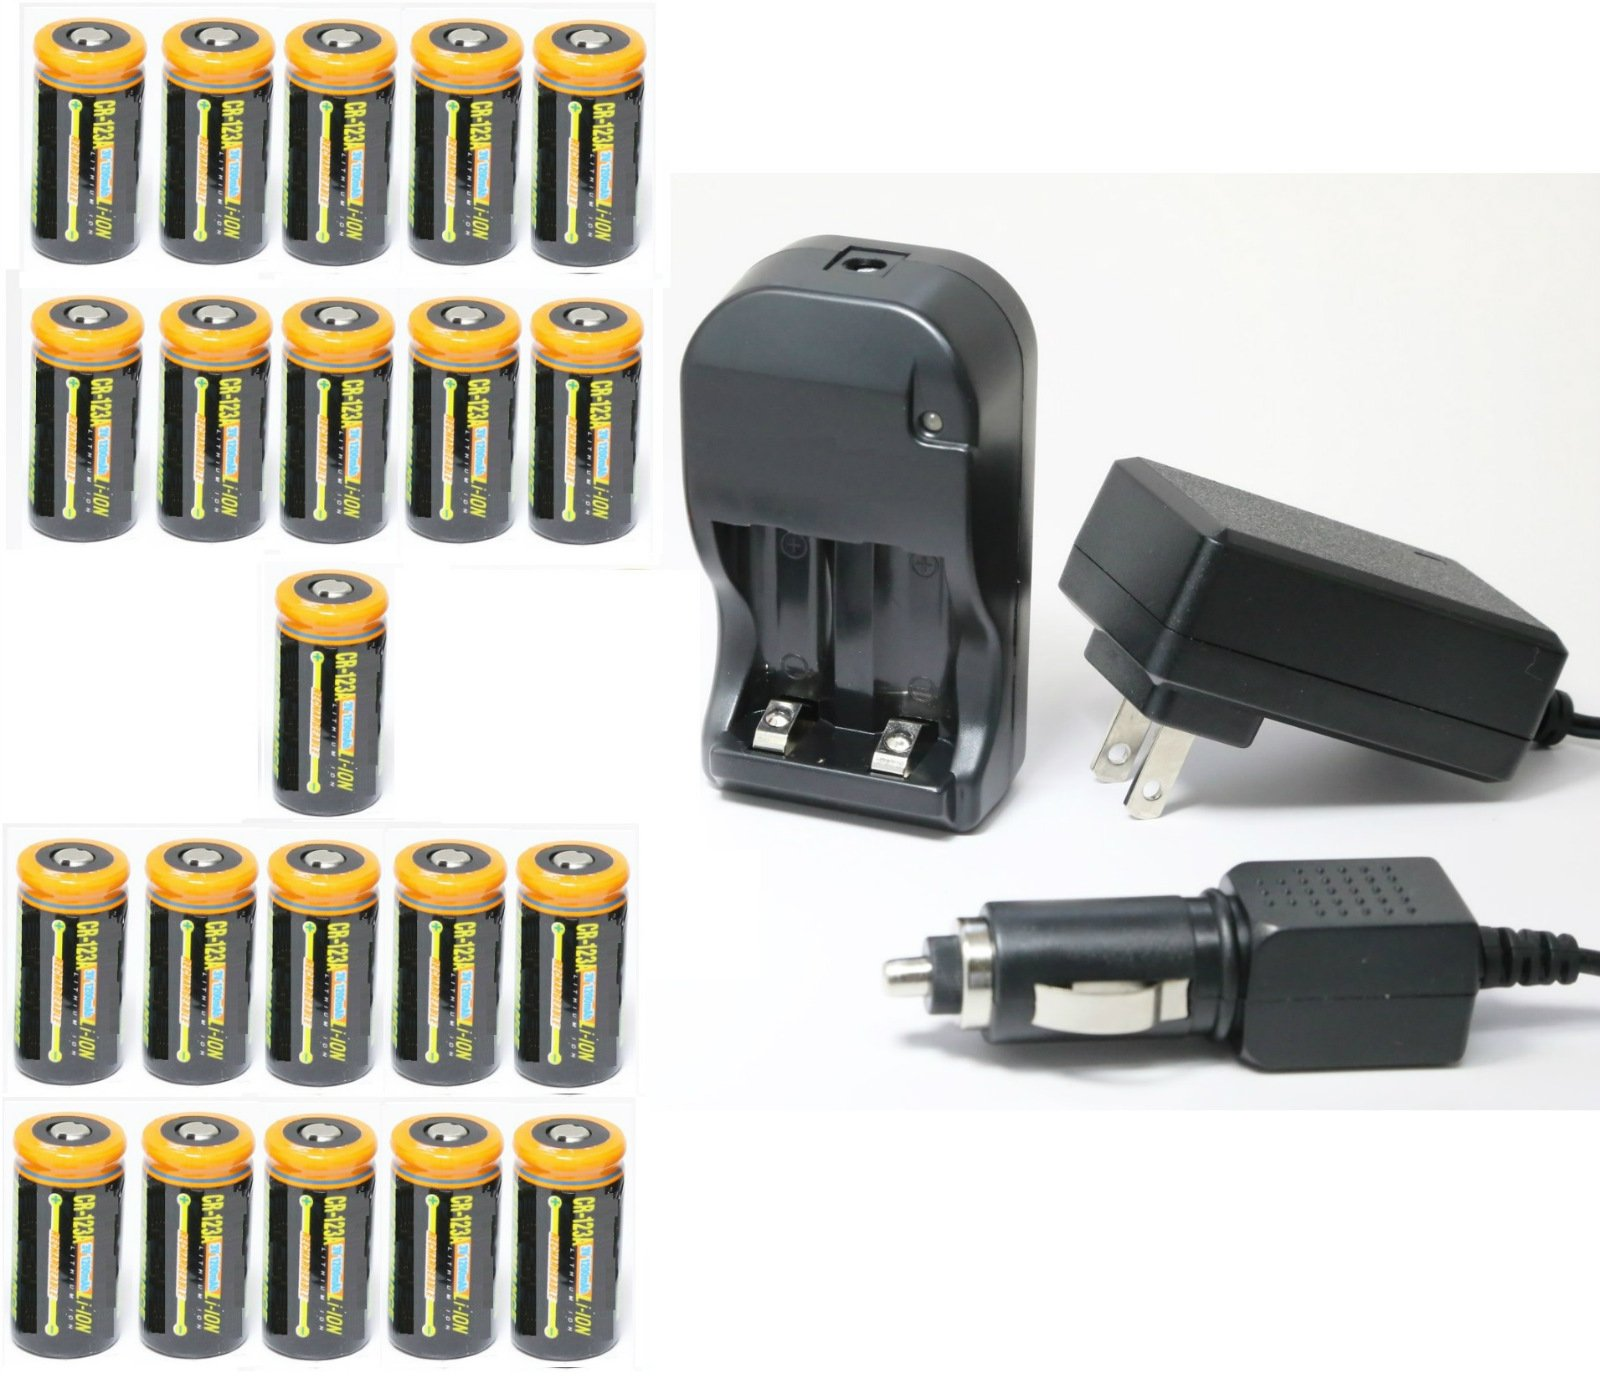 Ultimate Arms Gear 21pc CR123A 3V 1200 mAh Lithium Rechargeable Batteries Battery Charger Kit Universal 110/220V Rapid Wall Outlet & 12V Car Lighter Plug Adapter MAG TAC Flashlight Light Laser by Ultimate Arms Gear